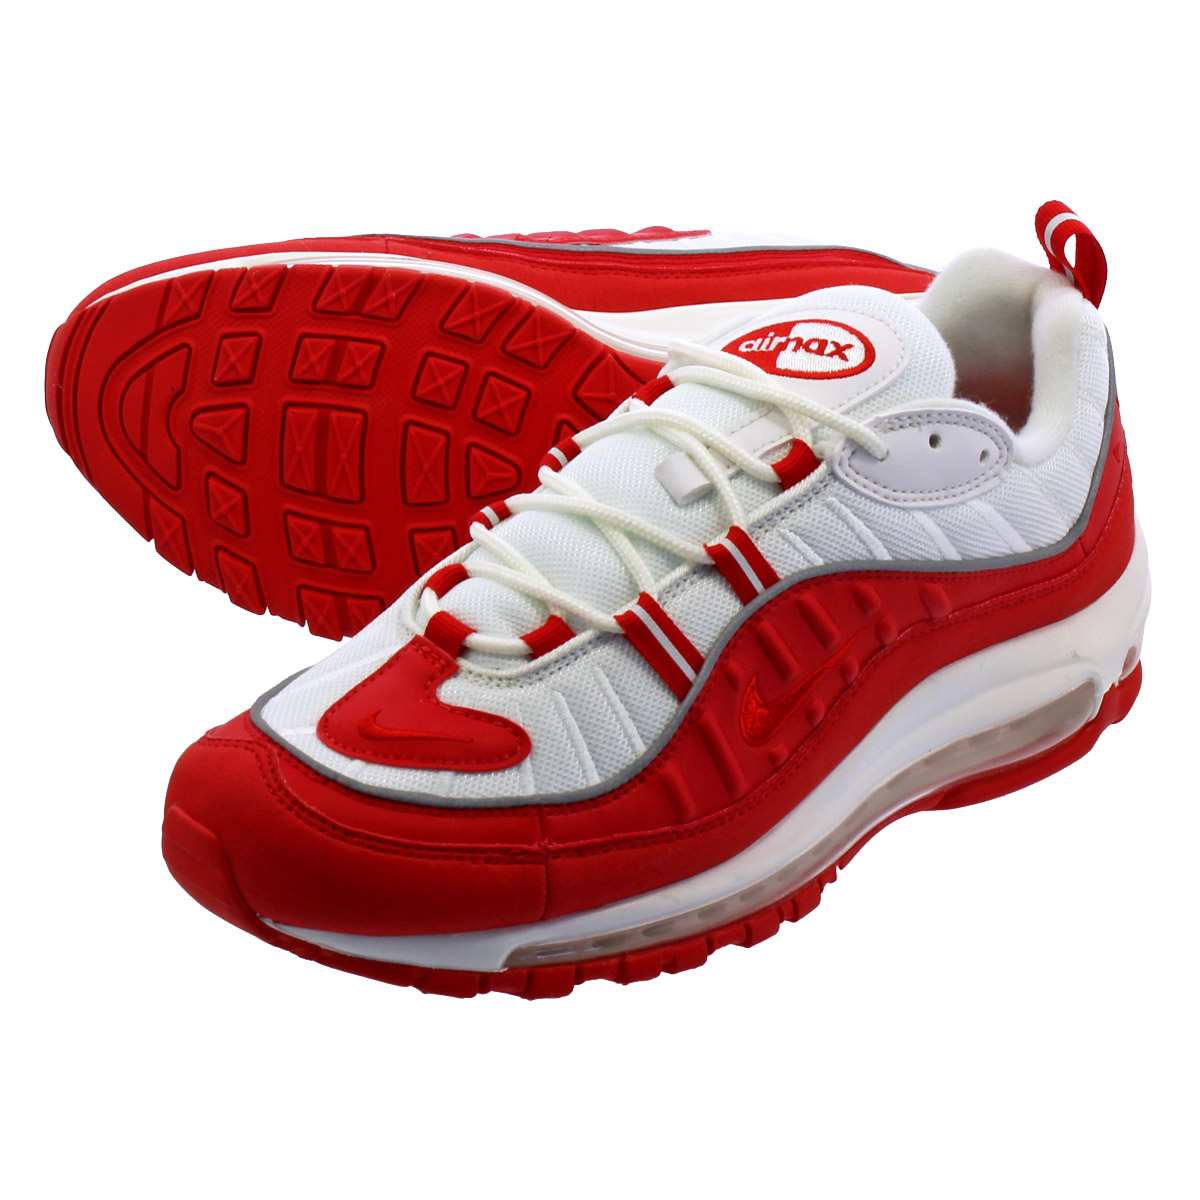 NIKE AIR MAX 98 Kie Ney AMAX 98 UNIVERSITY REDUNIVERSITY RED 640,744 602